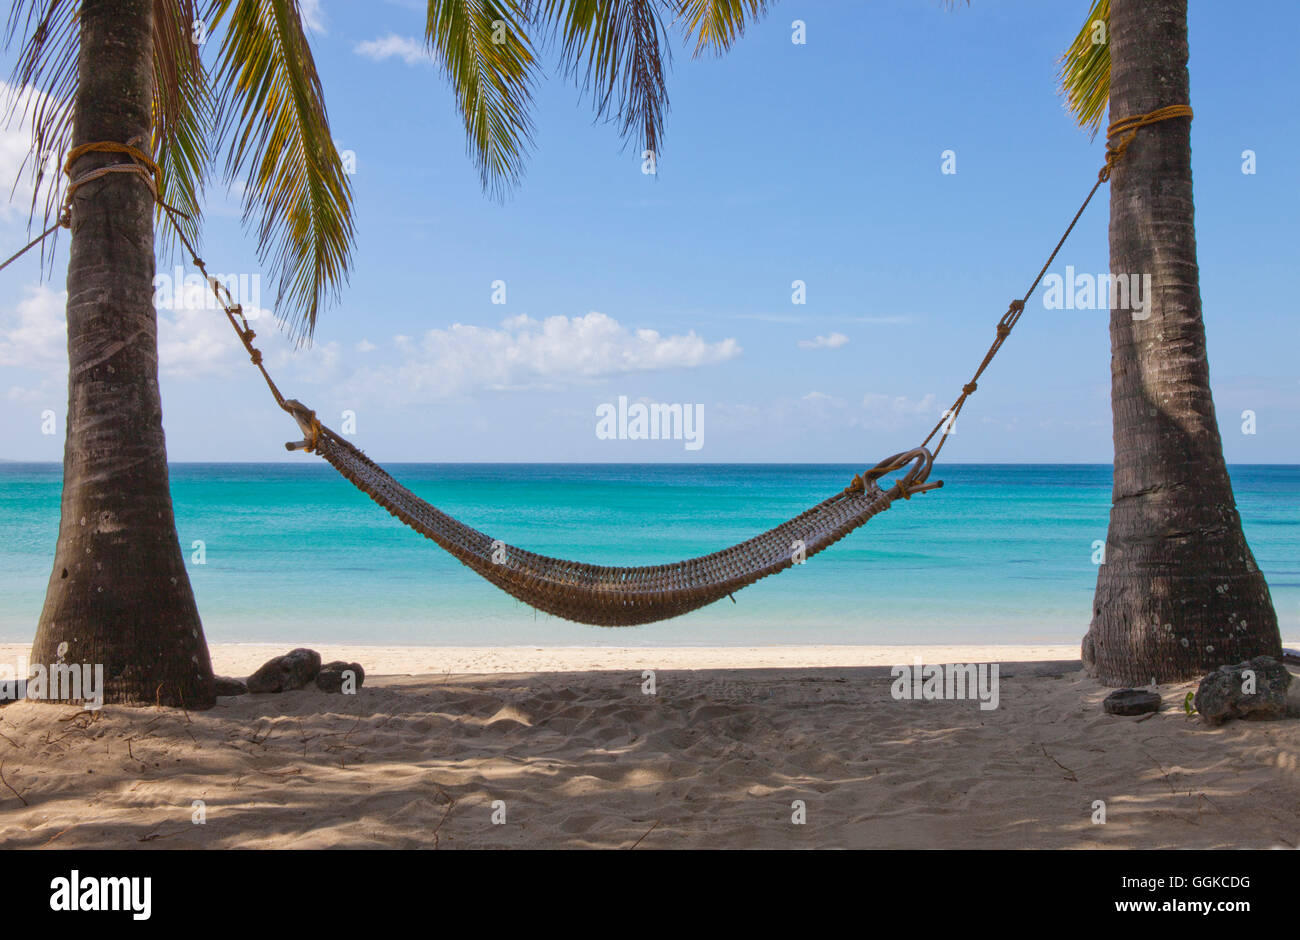 Hammock Between Two Palm Trees At Tropical Beach Stock